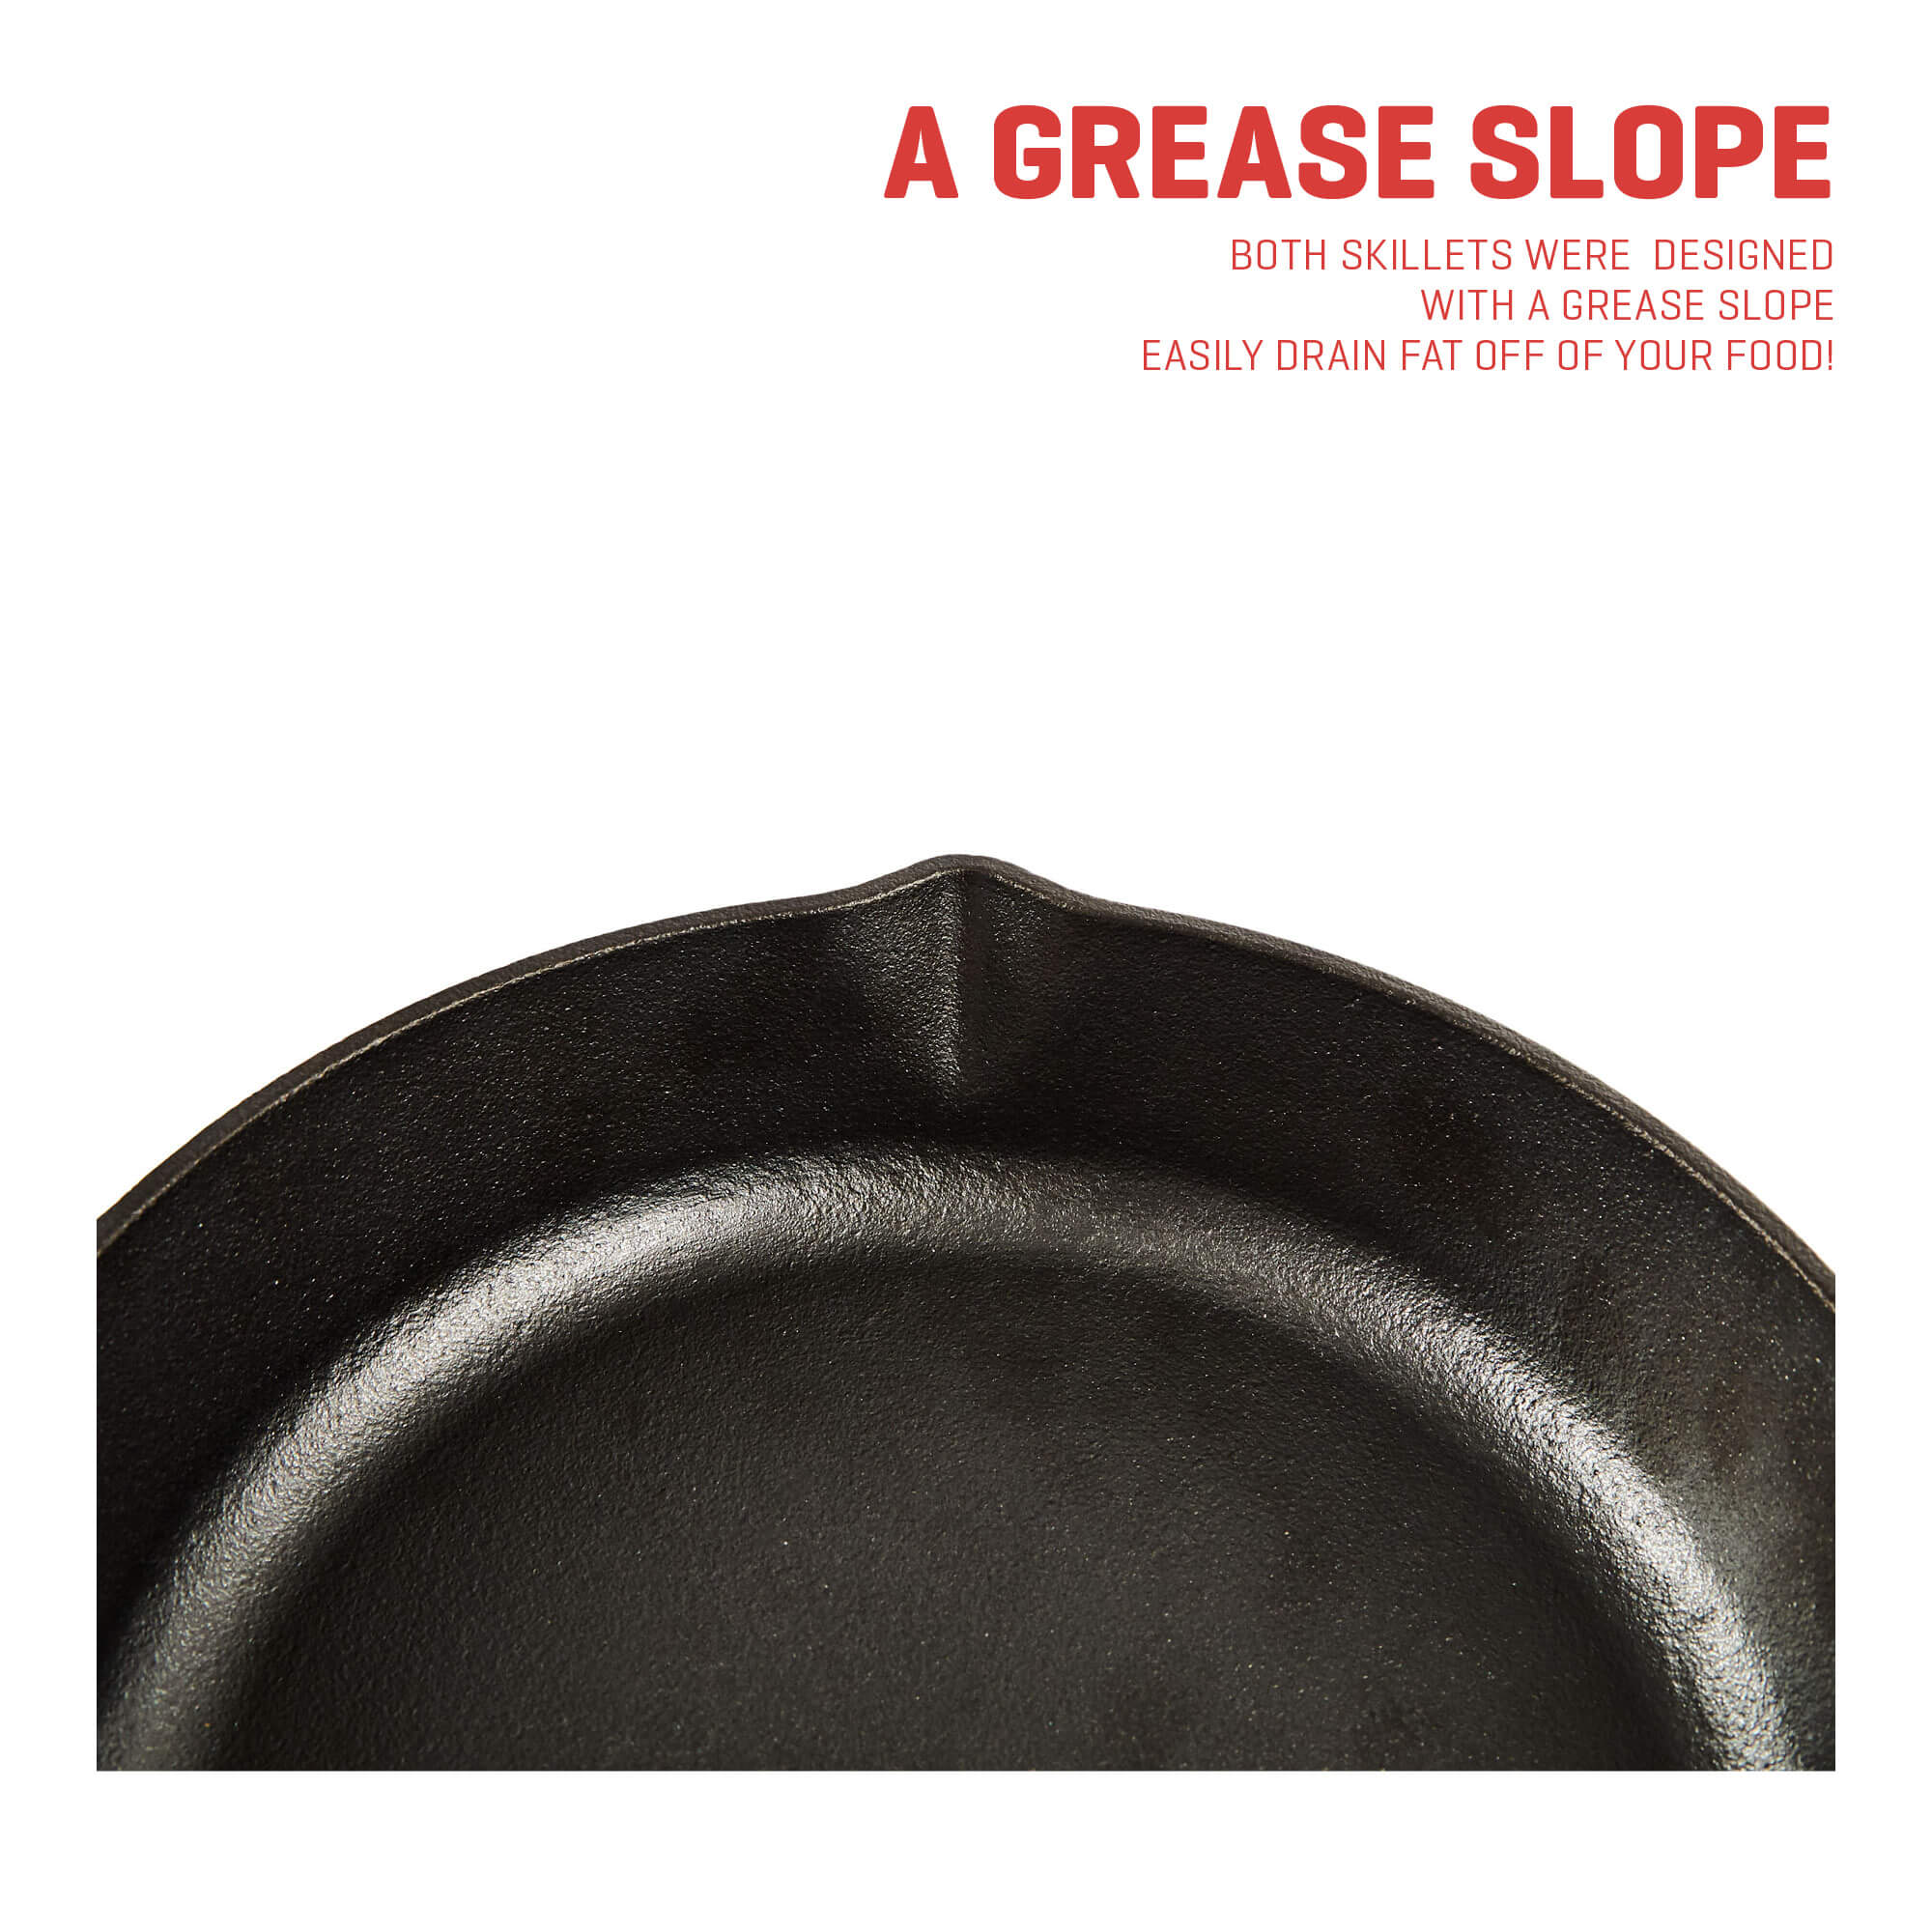 cast iron skillet grease slope